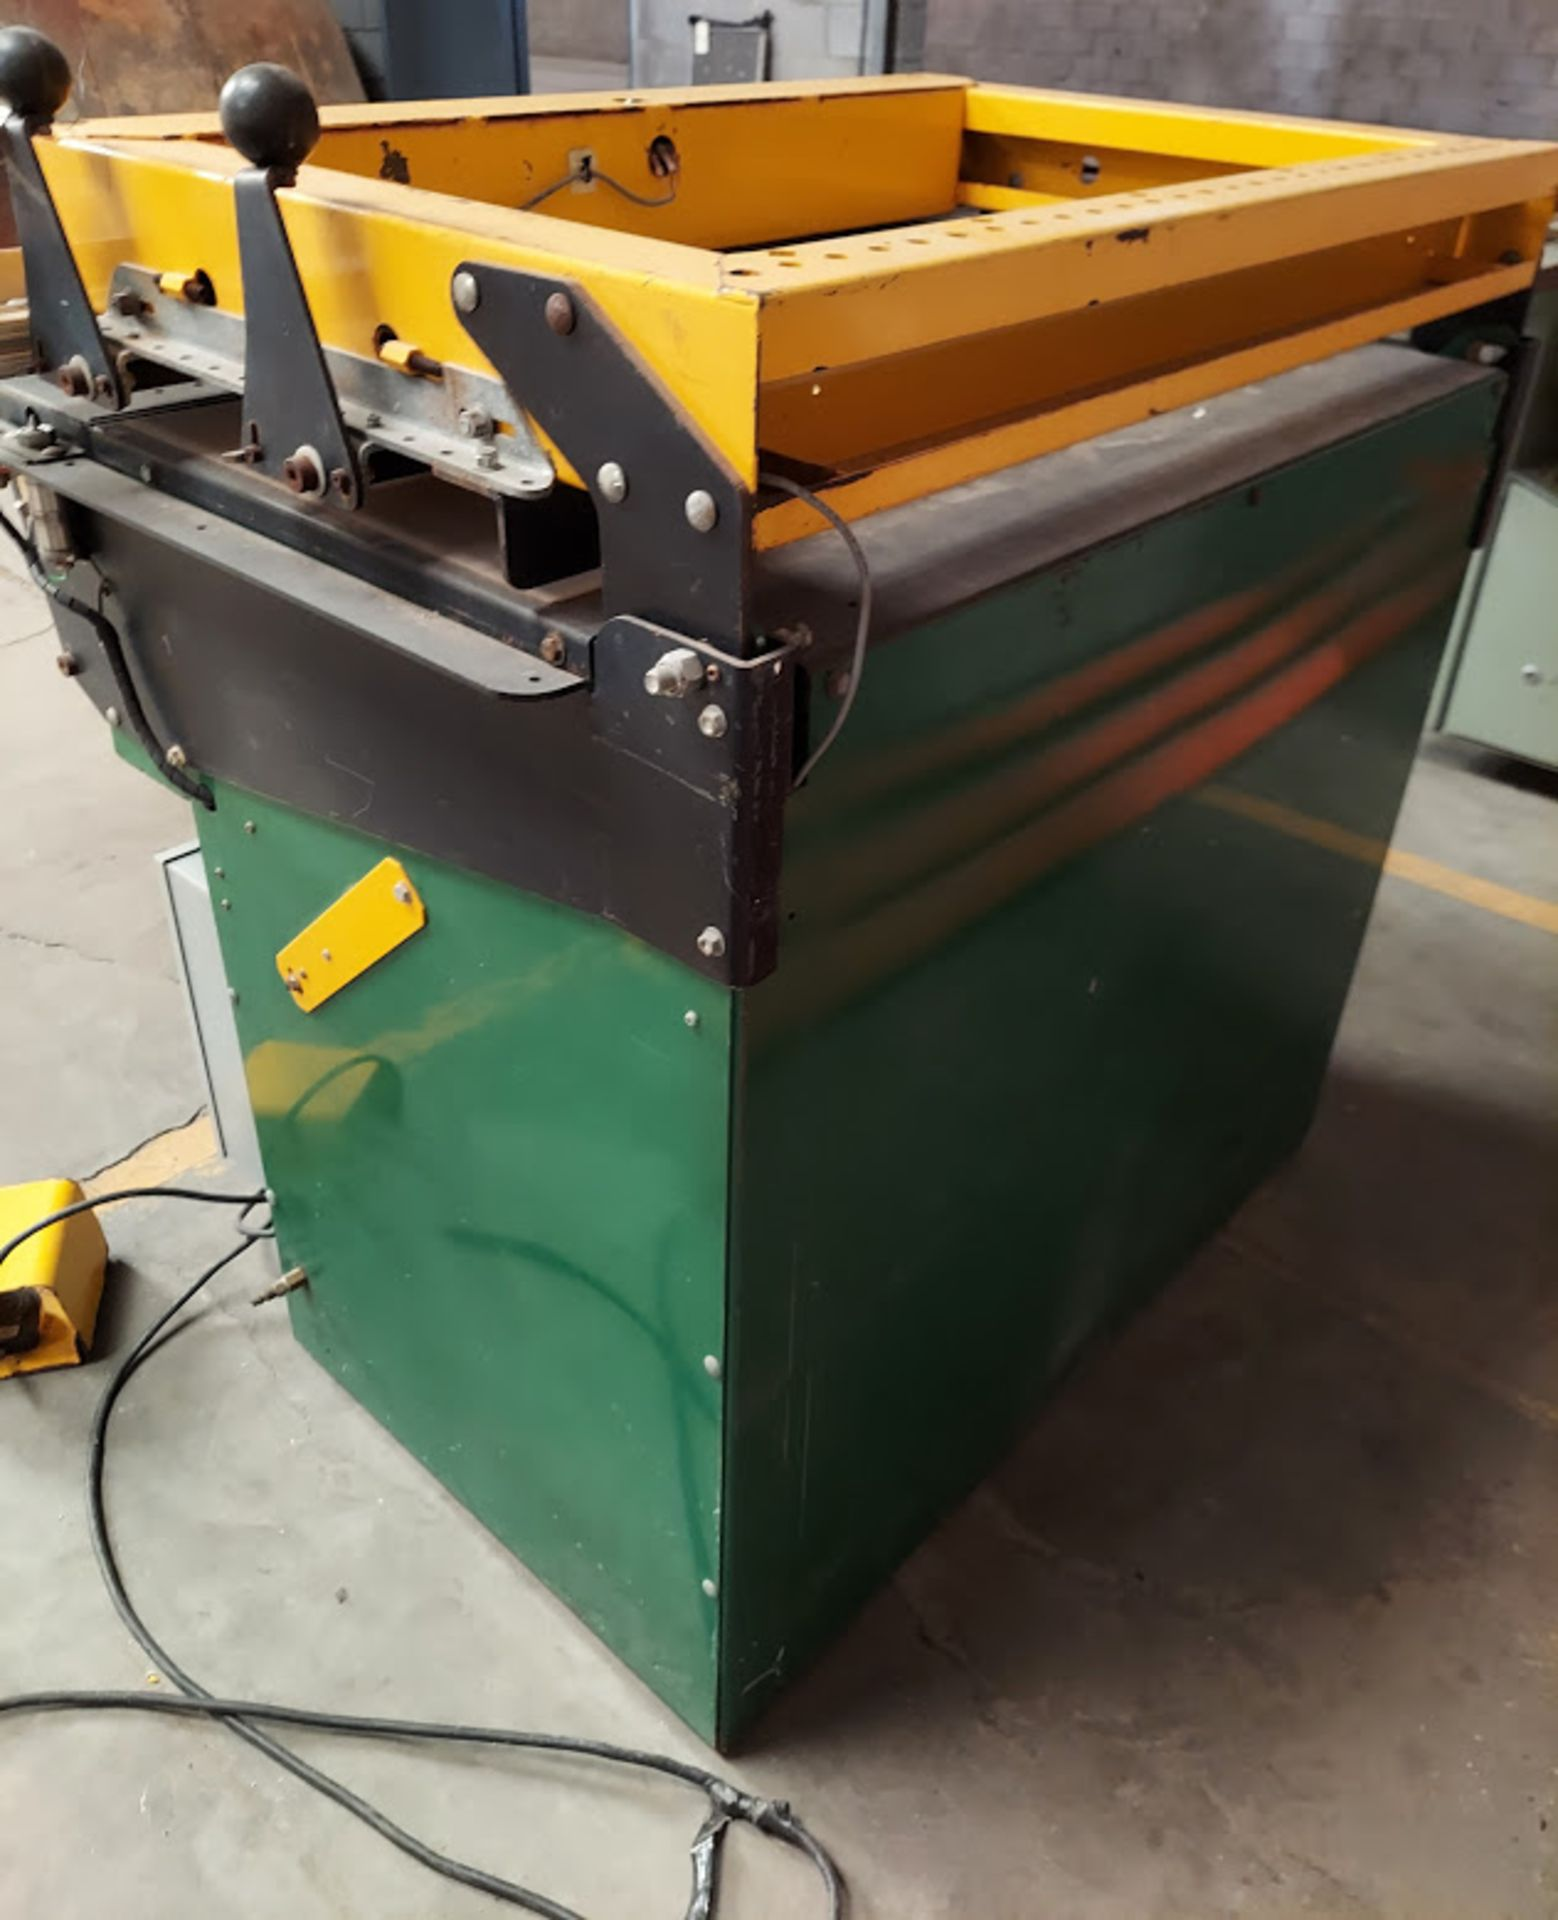 Castle LB-30 Line Boring Machine, Single head with 30 Spindles, 230 Volts 1 Phase - Image 2 of 5